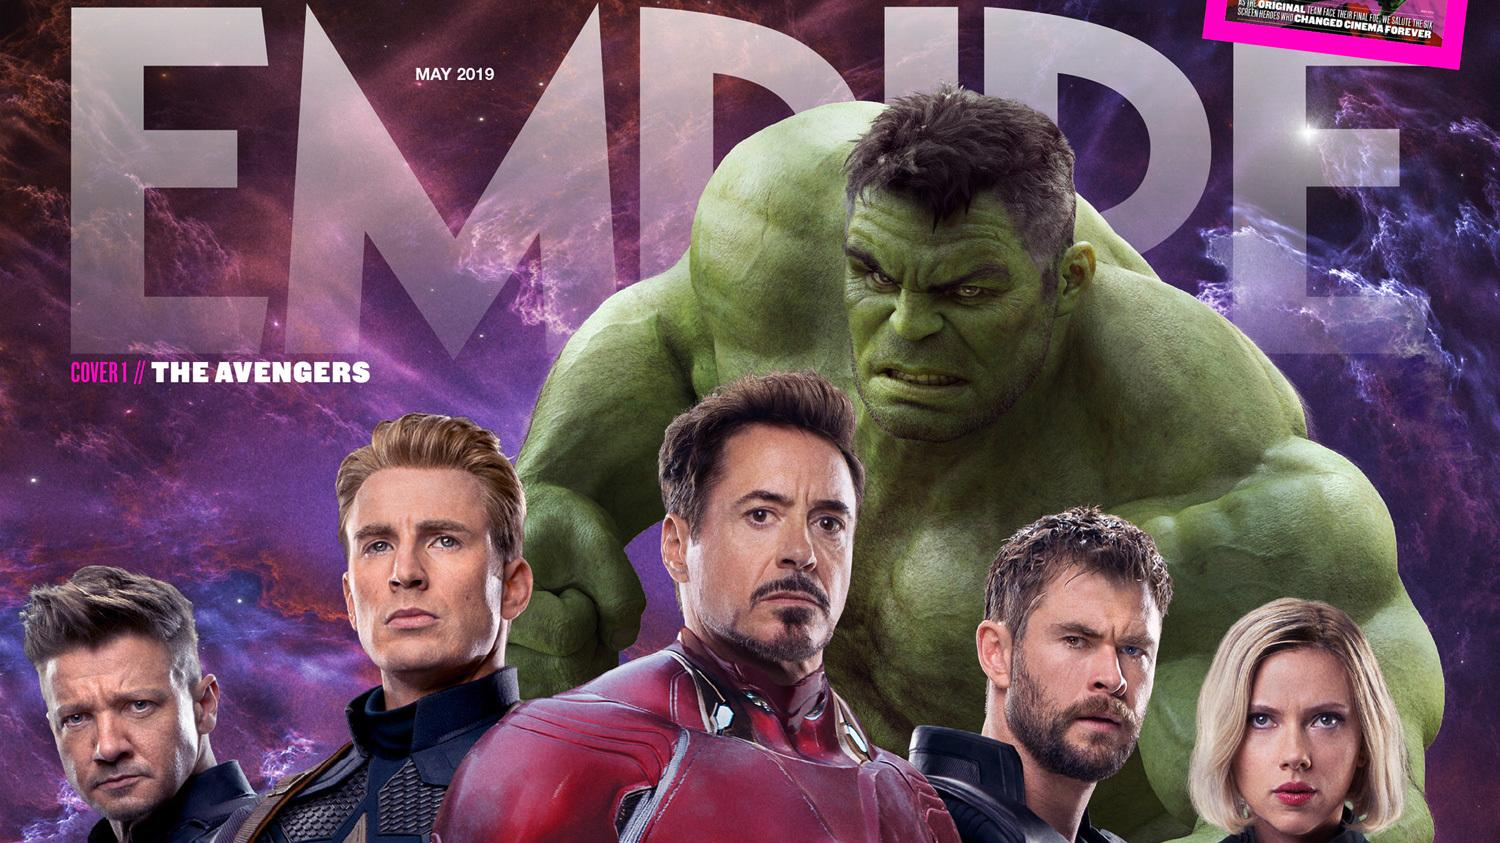 Empire Issue Preview: Avengers Endgame, Danny Boyle, Godzilla II, Blair Witch, Nicholas Hoult